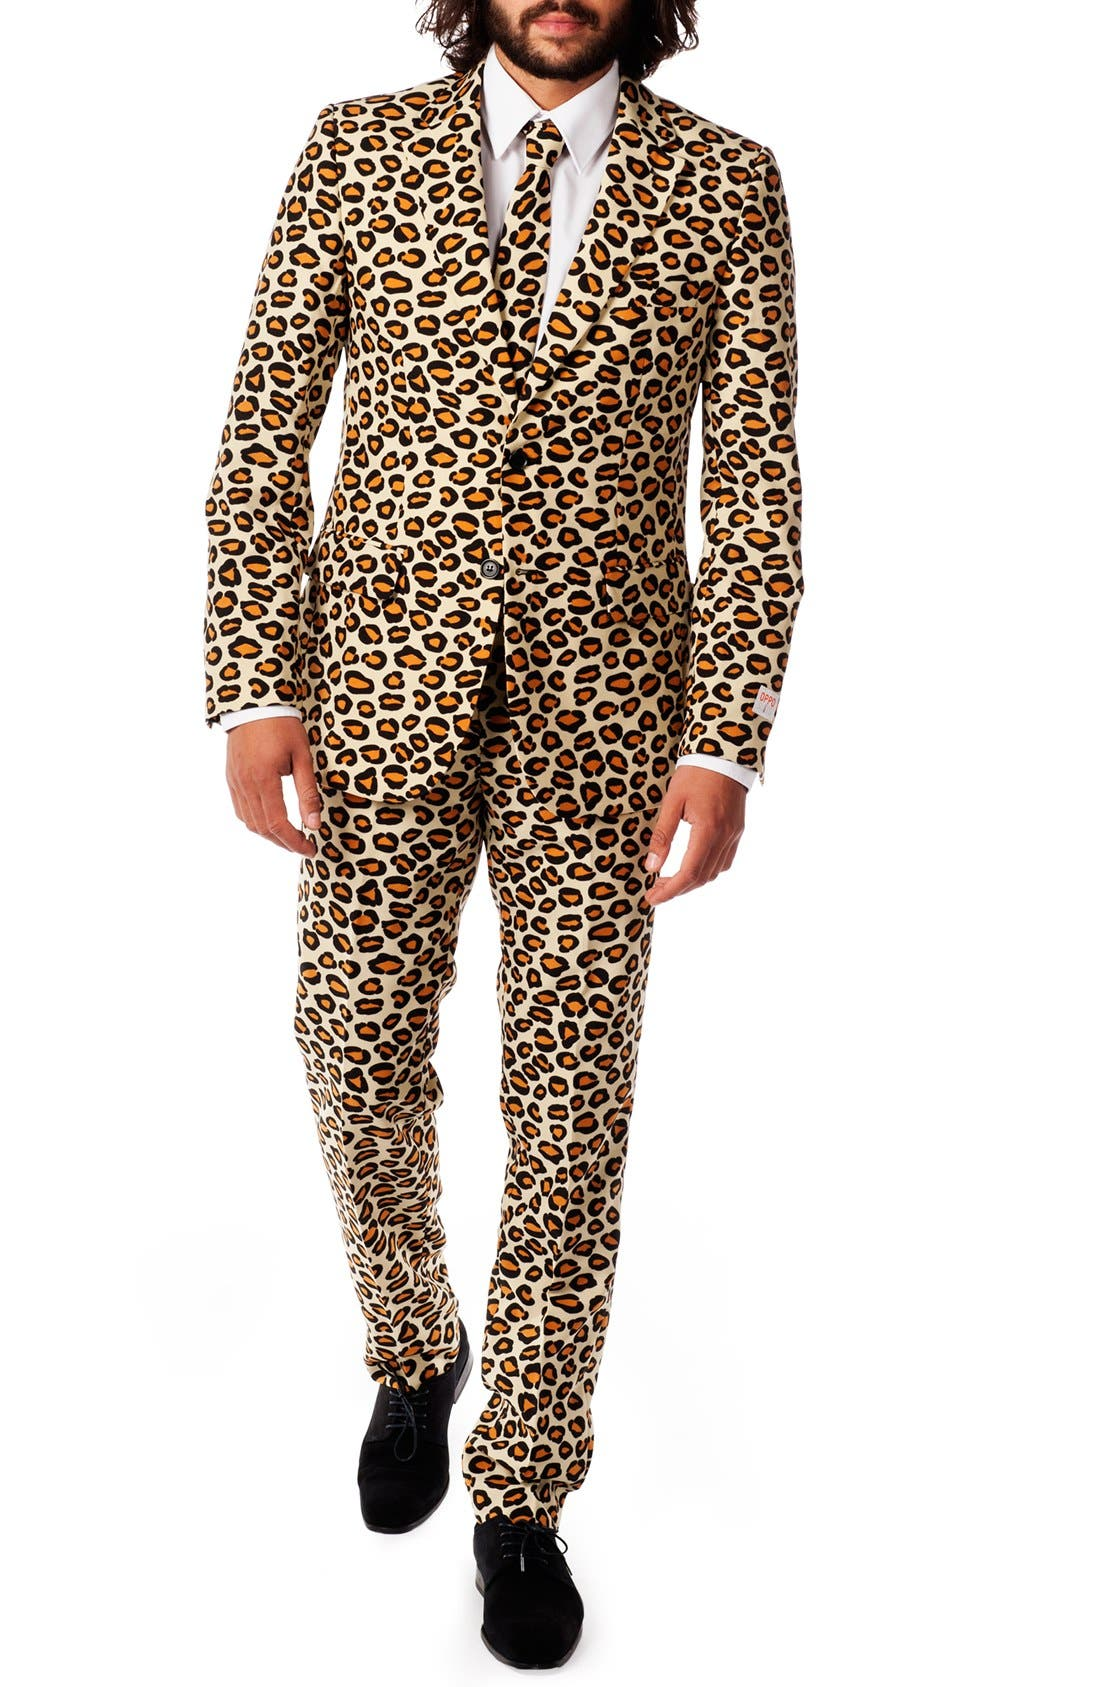 OppoSuits 'The Jag' Trim Fit Two-Piece Suit with Tie